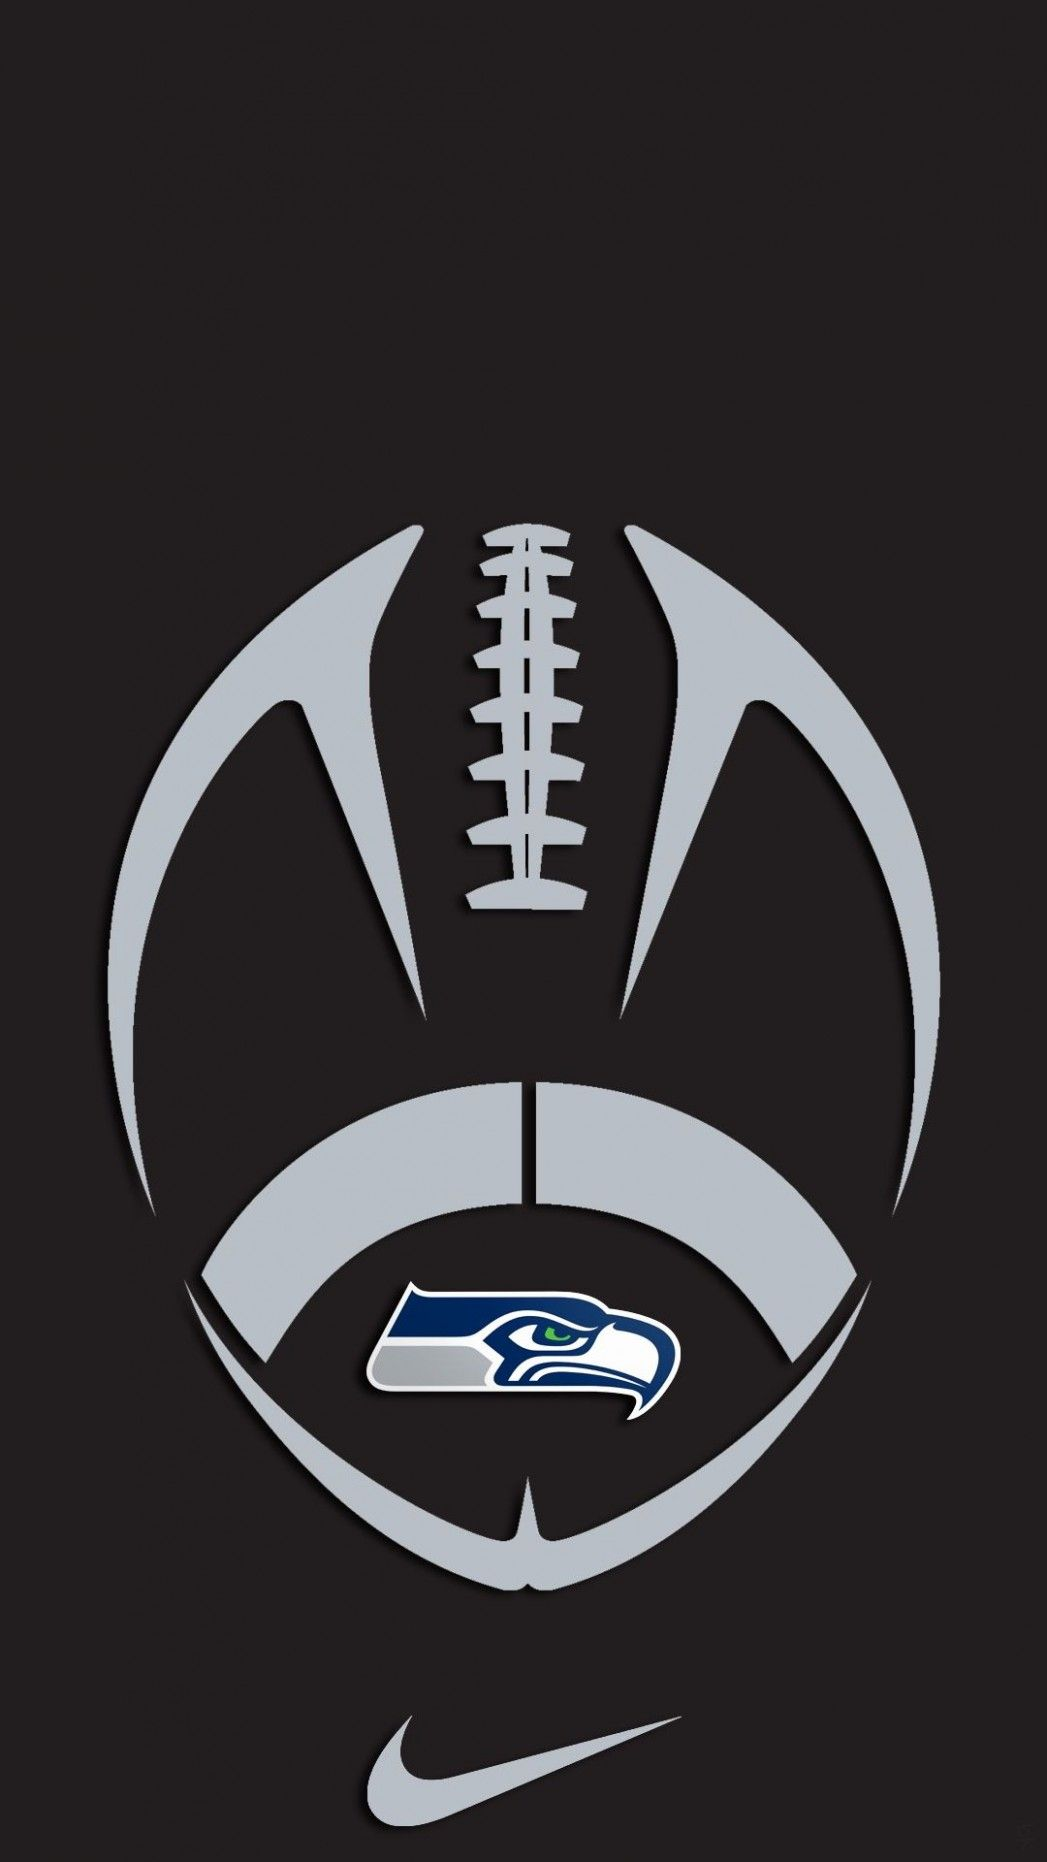 10 Advantages Of Seattle Seahawks Wallpapers And How You Can Make Full Use Of It